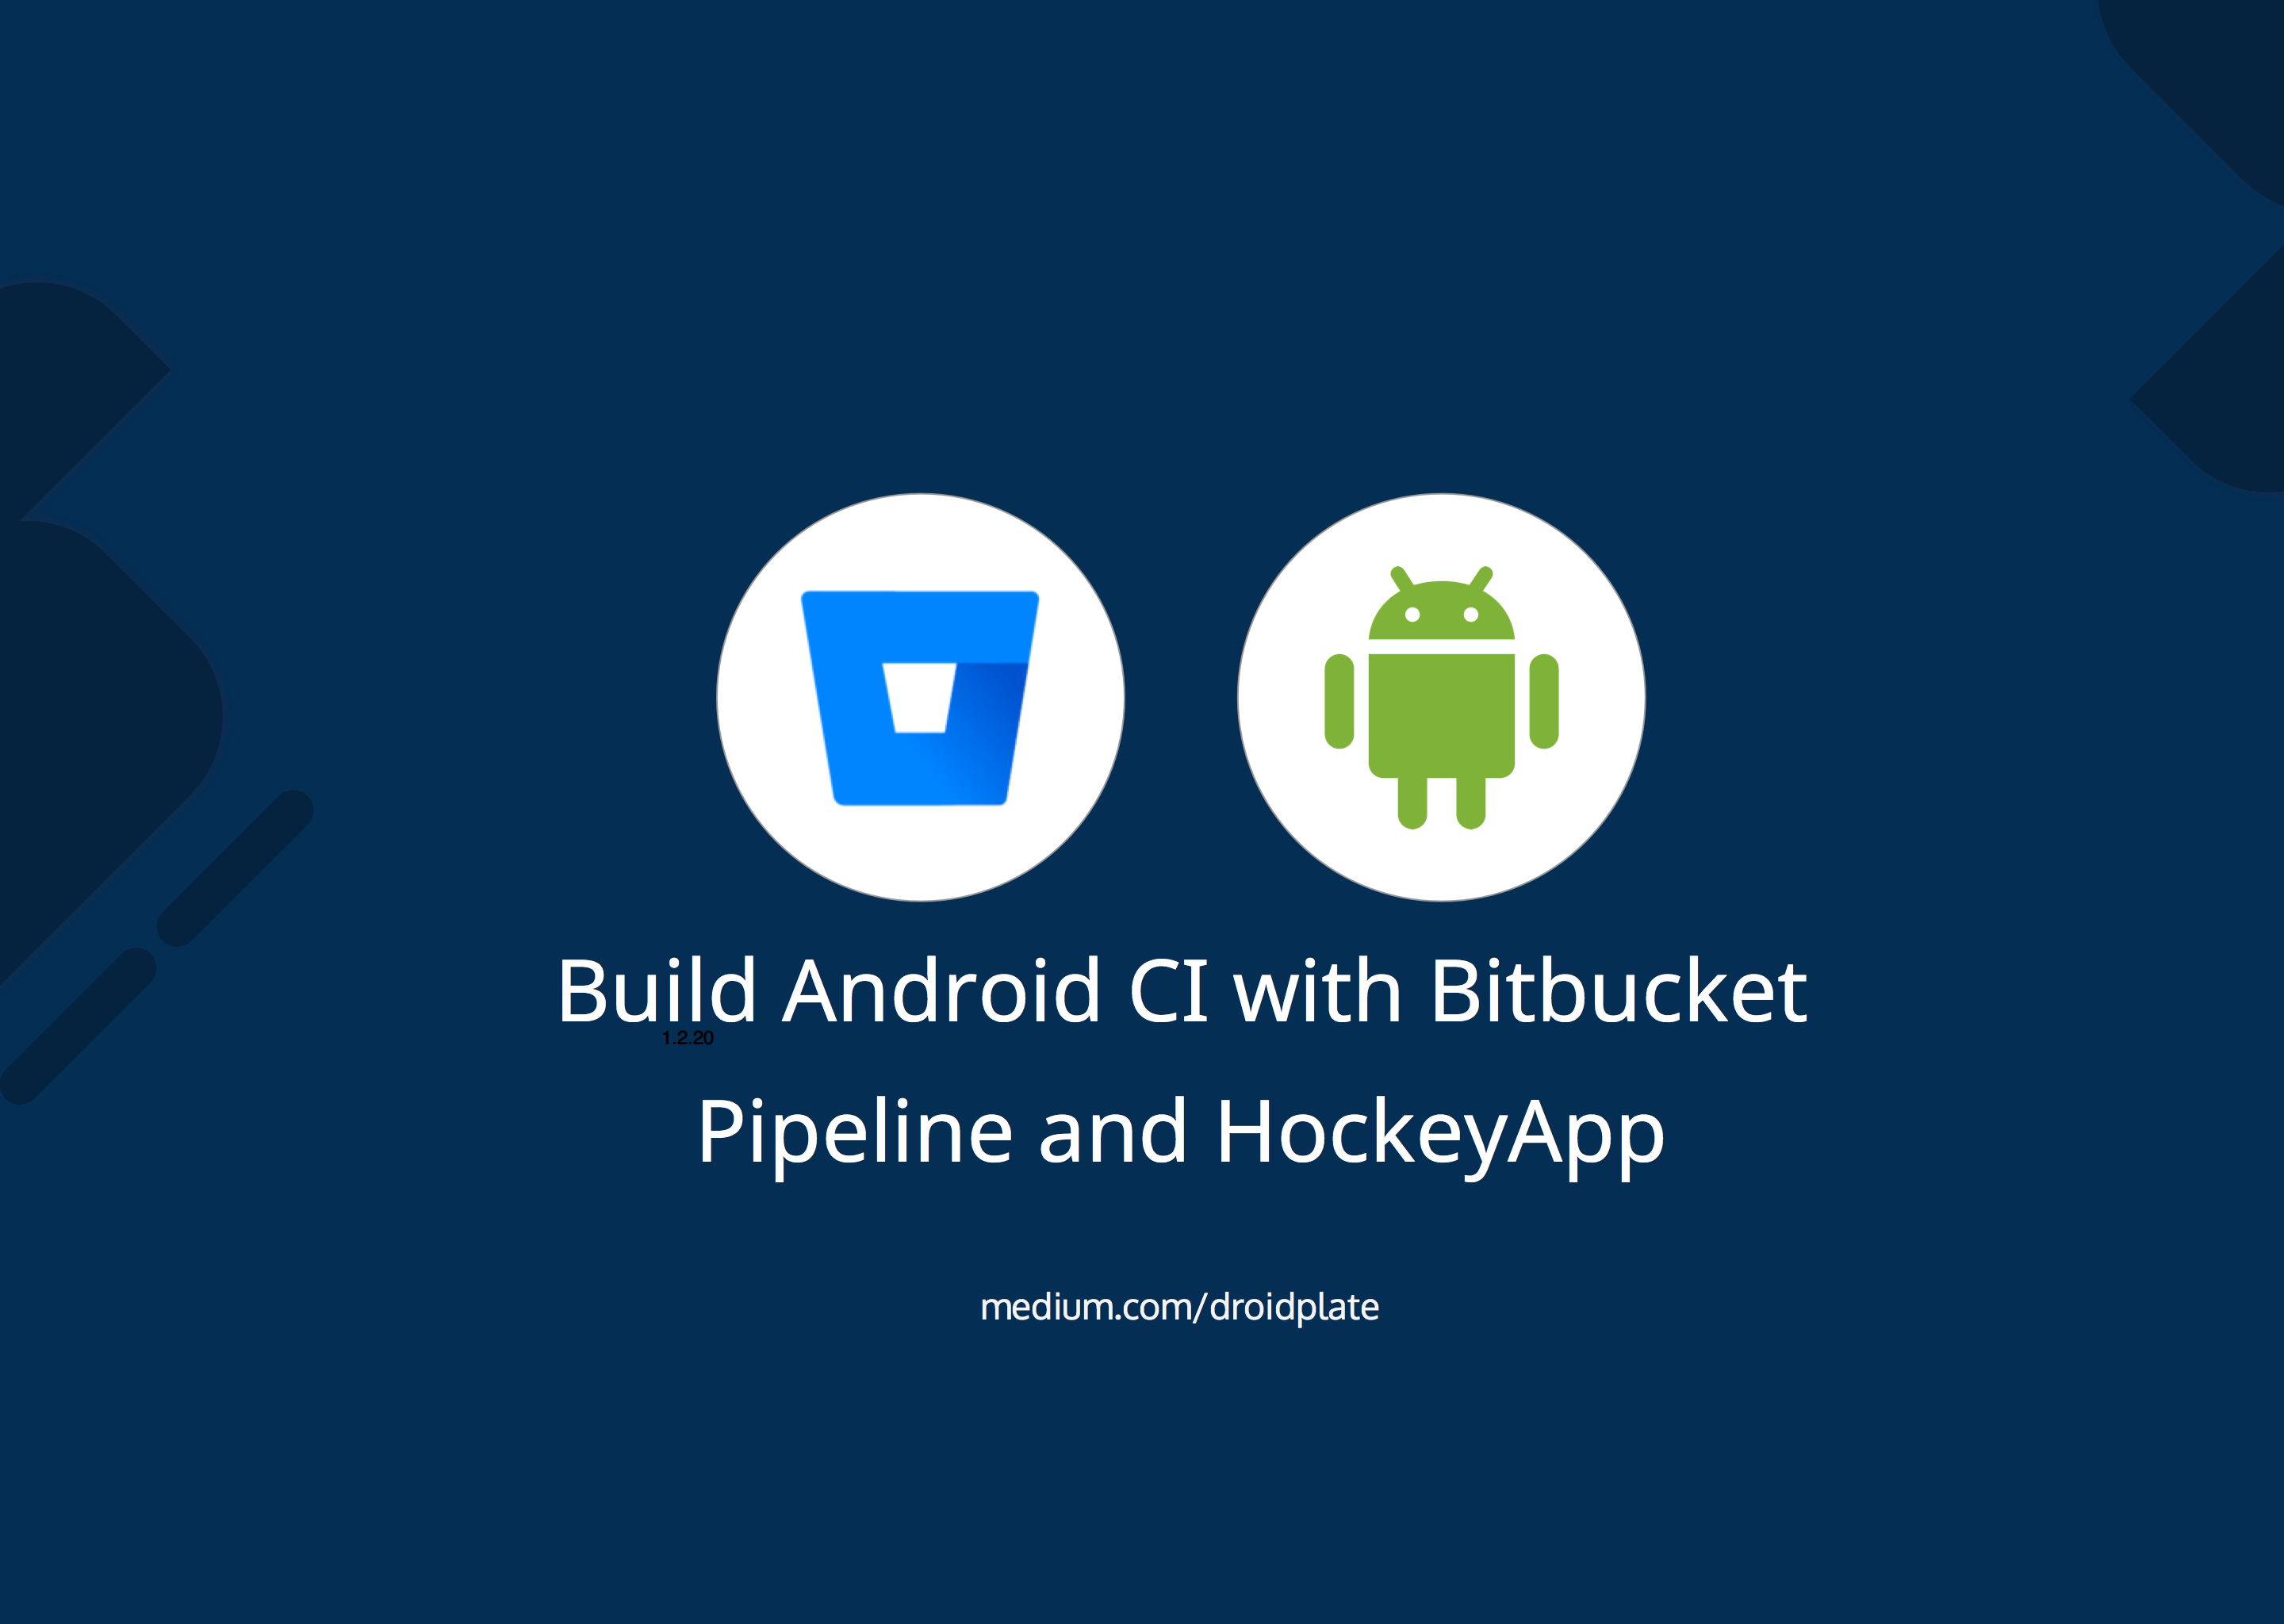 Build Android CI with Bitbucket Pipeline and HockeyApp Part1